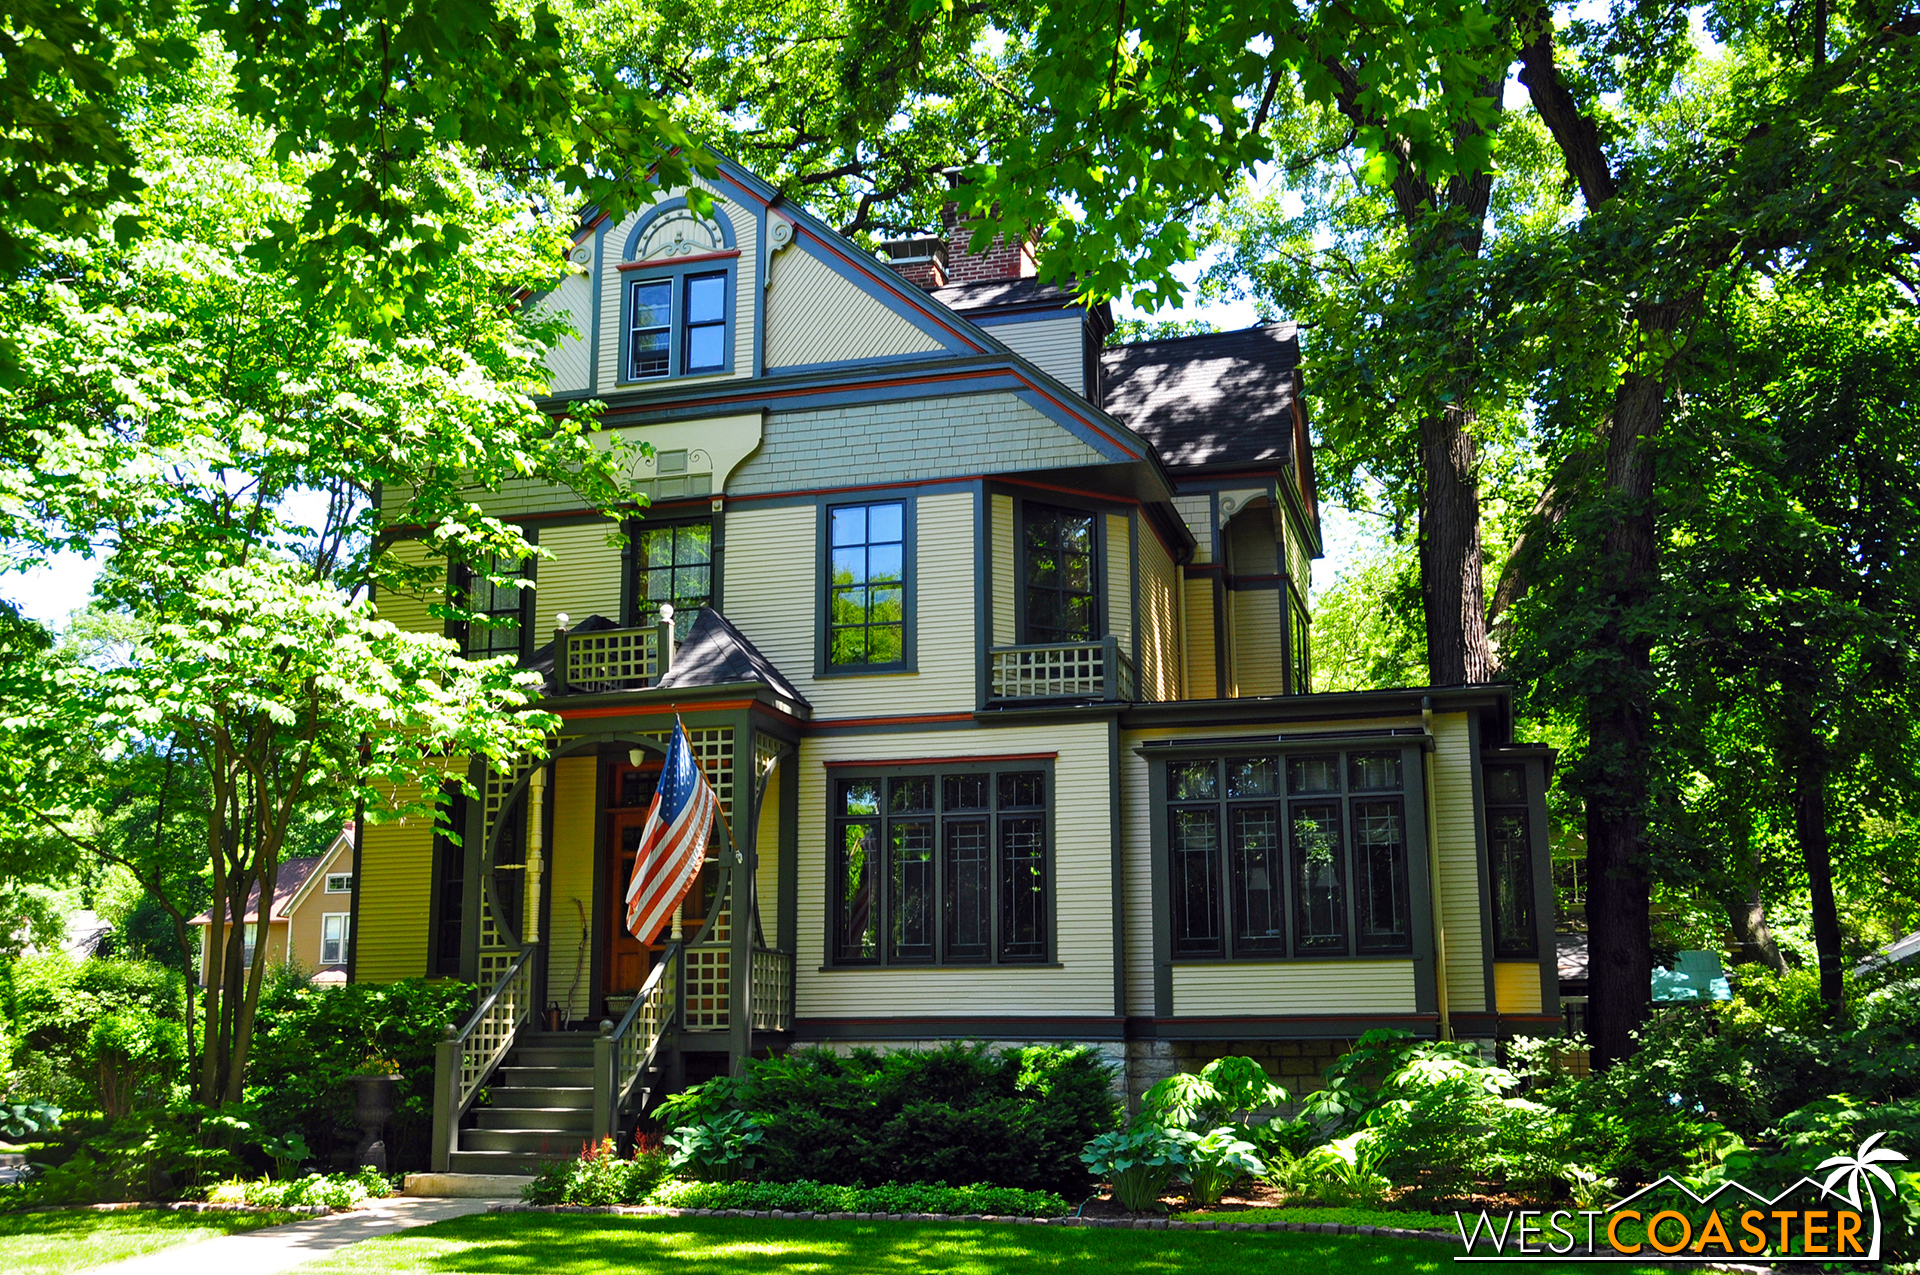 The community of Oak Park, located northwest of Downtown Chicago, features a charming variety of eclectic houses, including many designed by Frank Lloyd Wright.